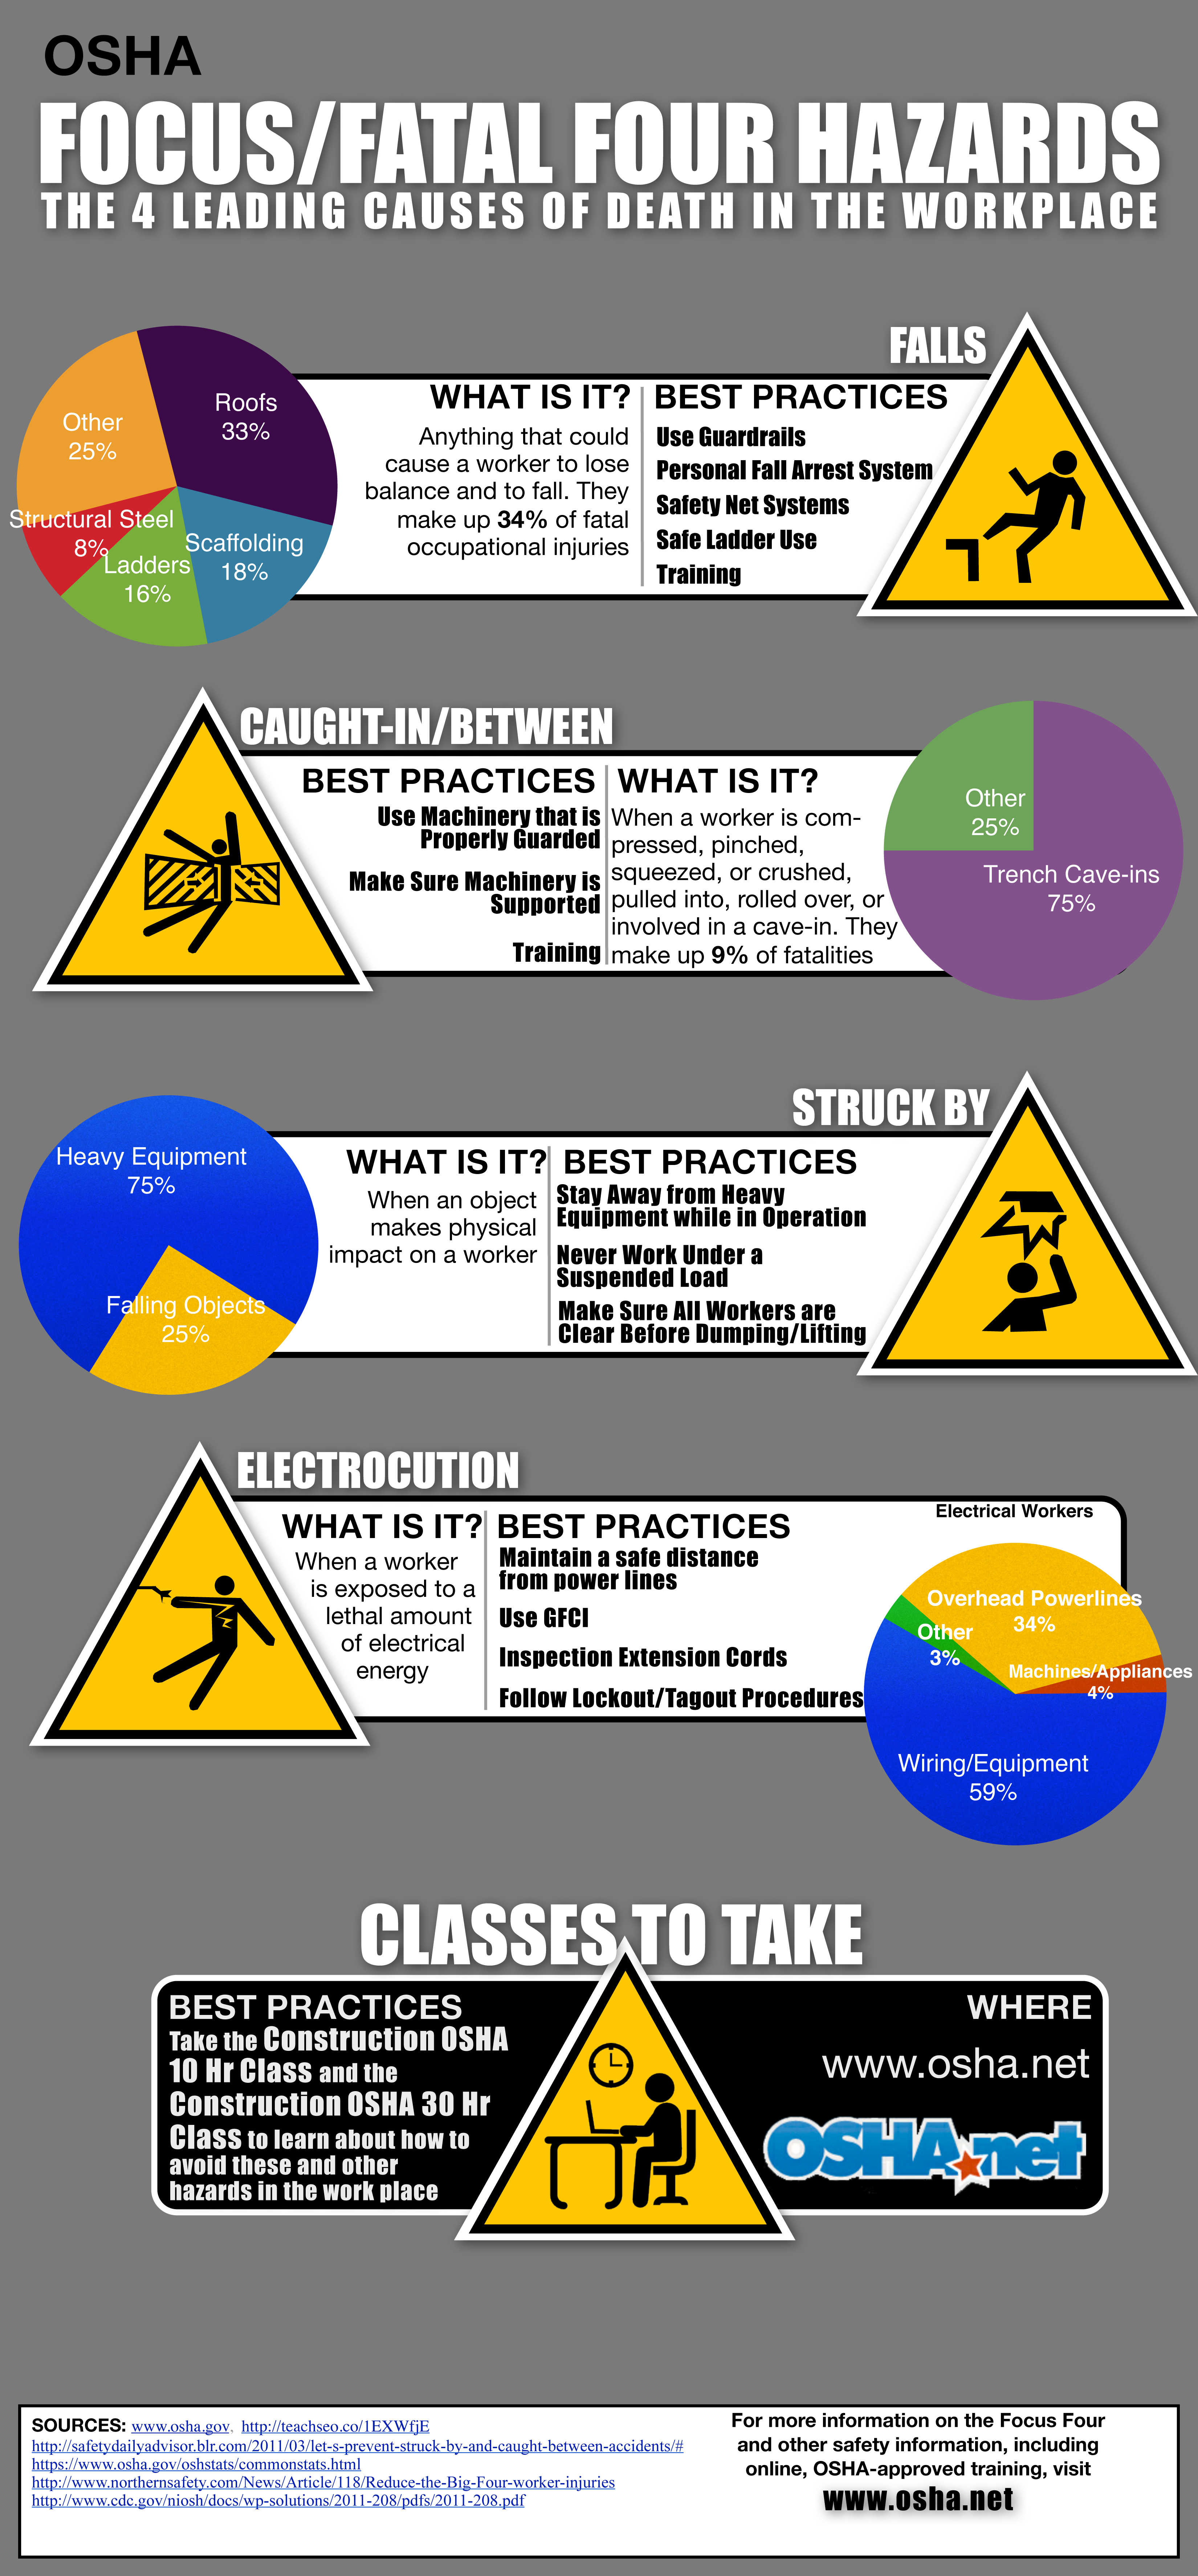 OSHA Focus Four Fatal Safety Hazards Causes and Best Practices to avoid them